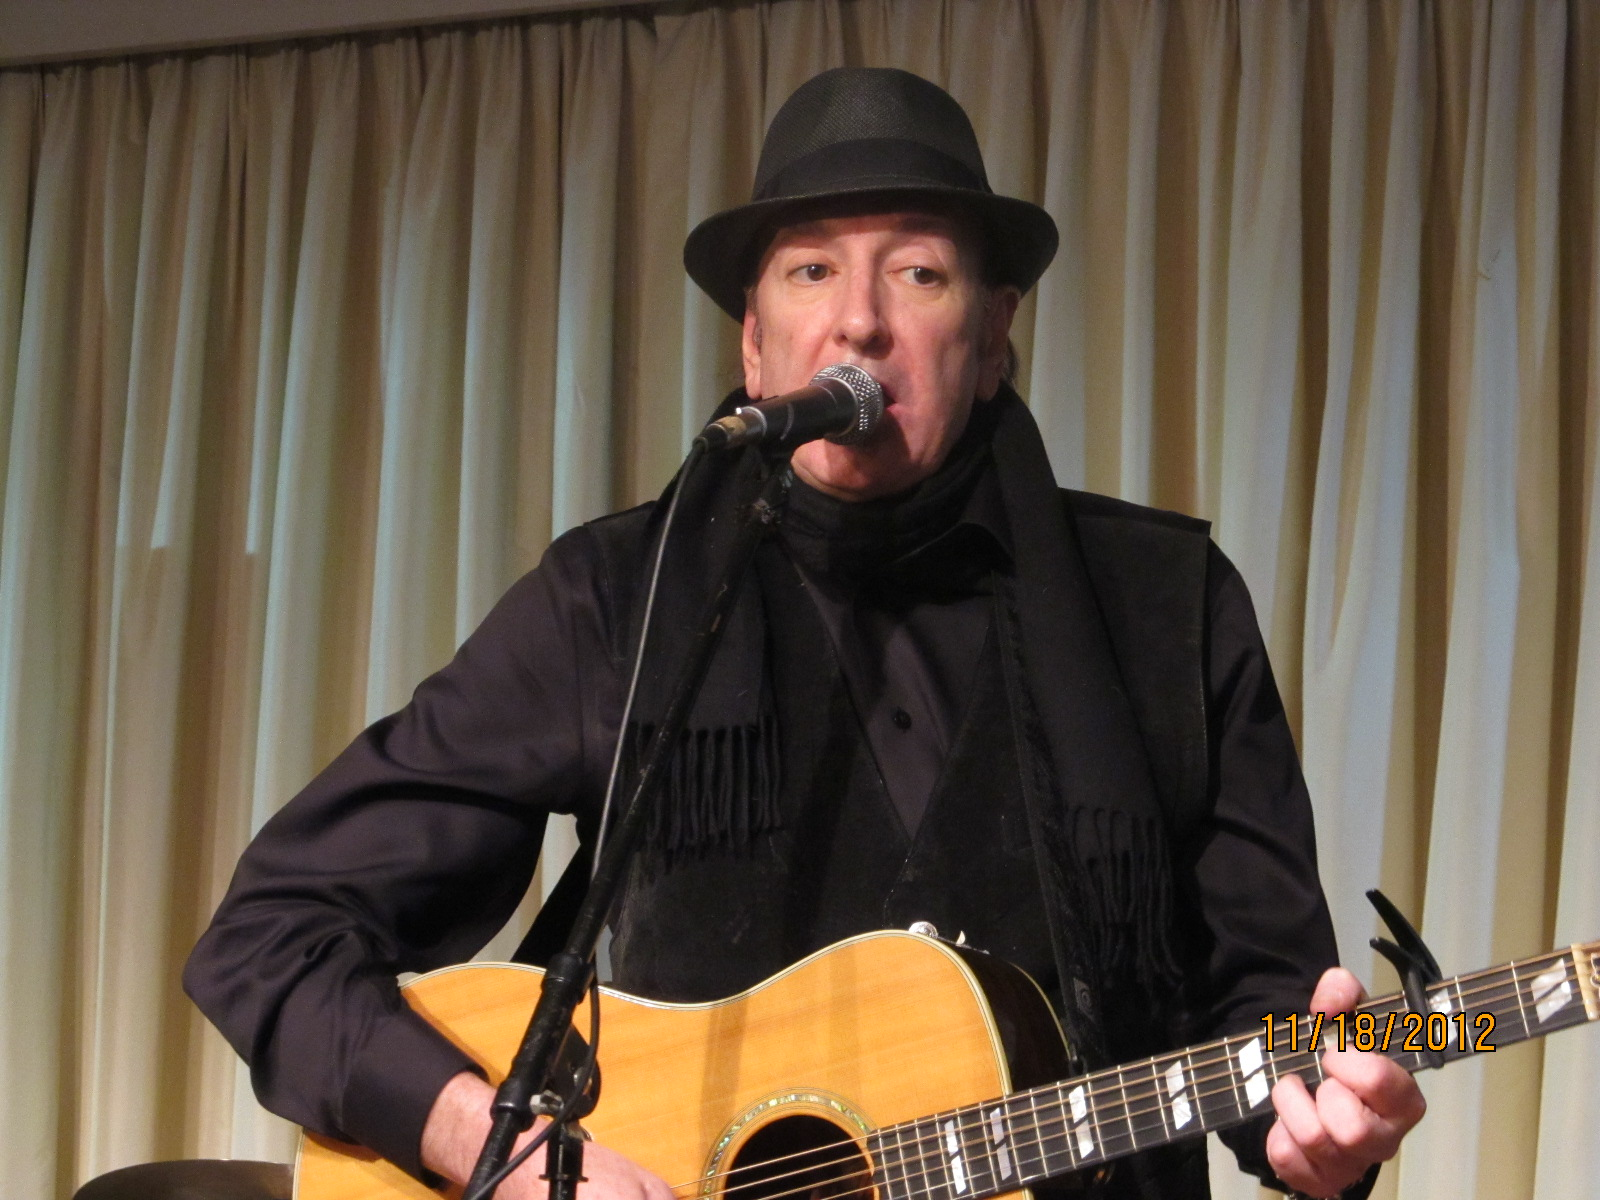 Legendary singer-songwriter Marty Nestor continues to shine, gets better with age